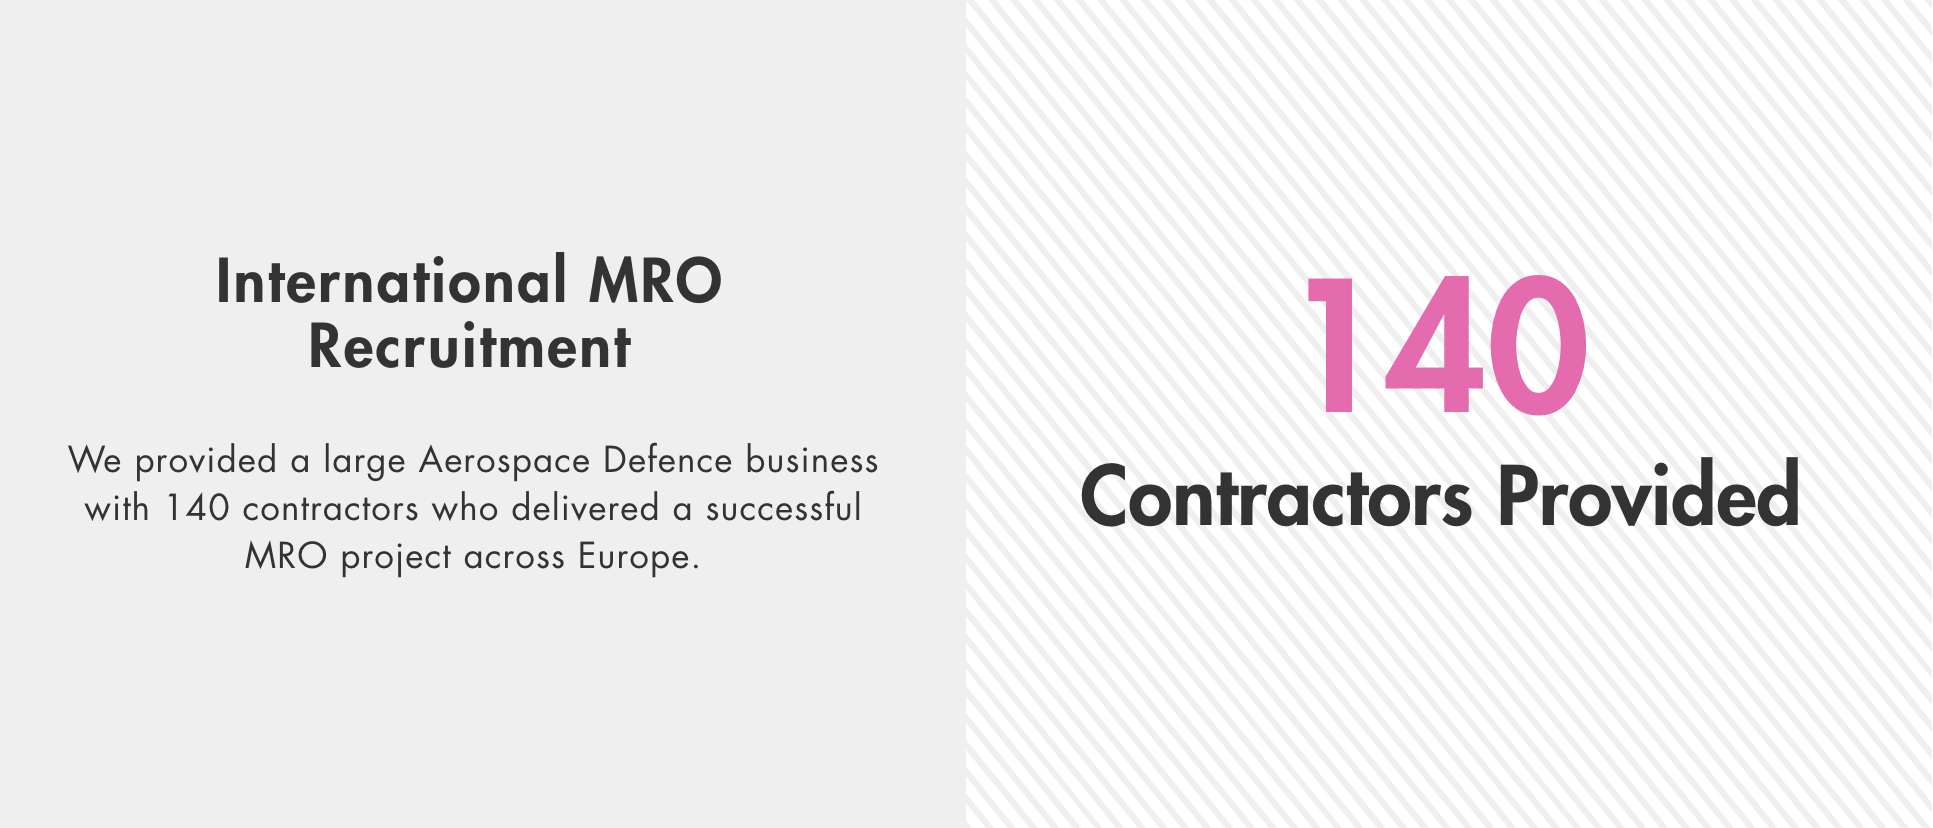 International MRO Recruitment Project